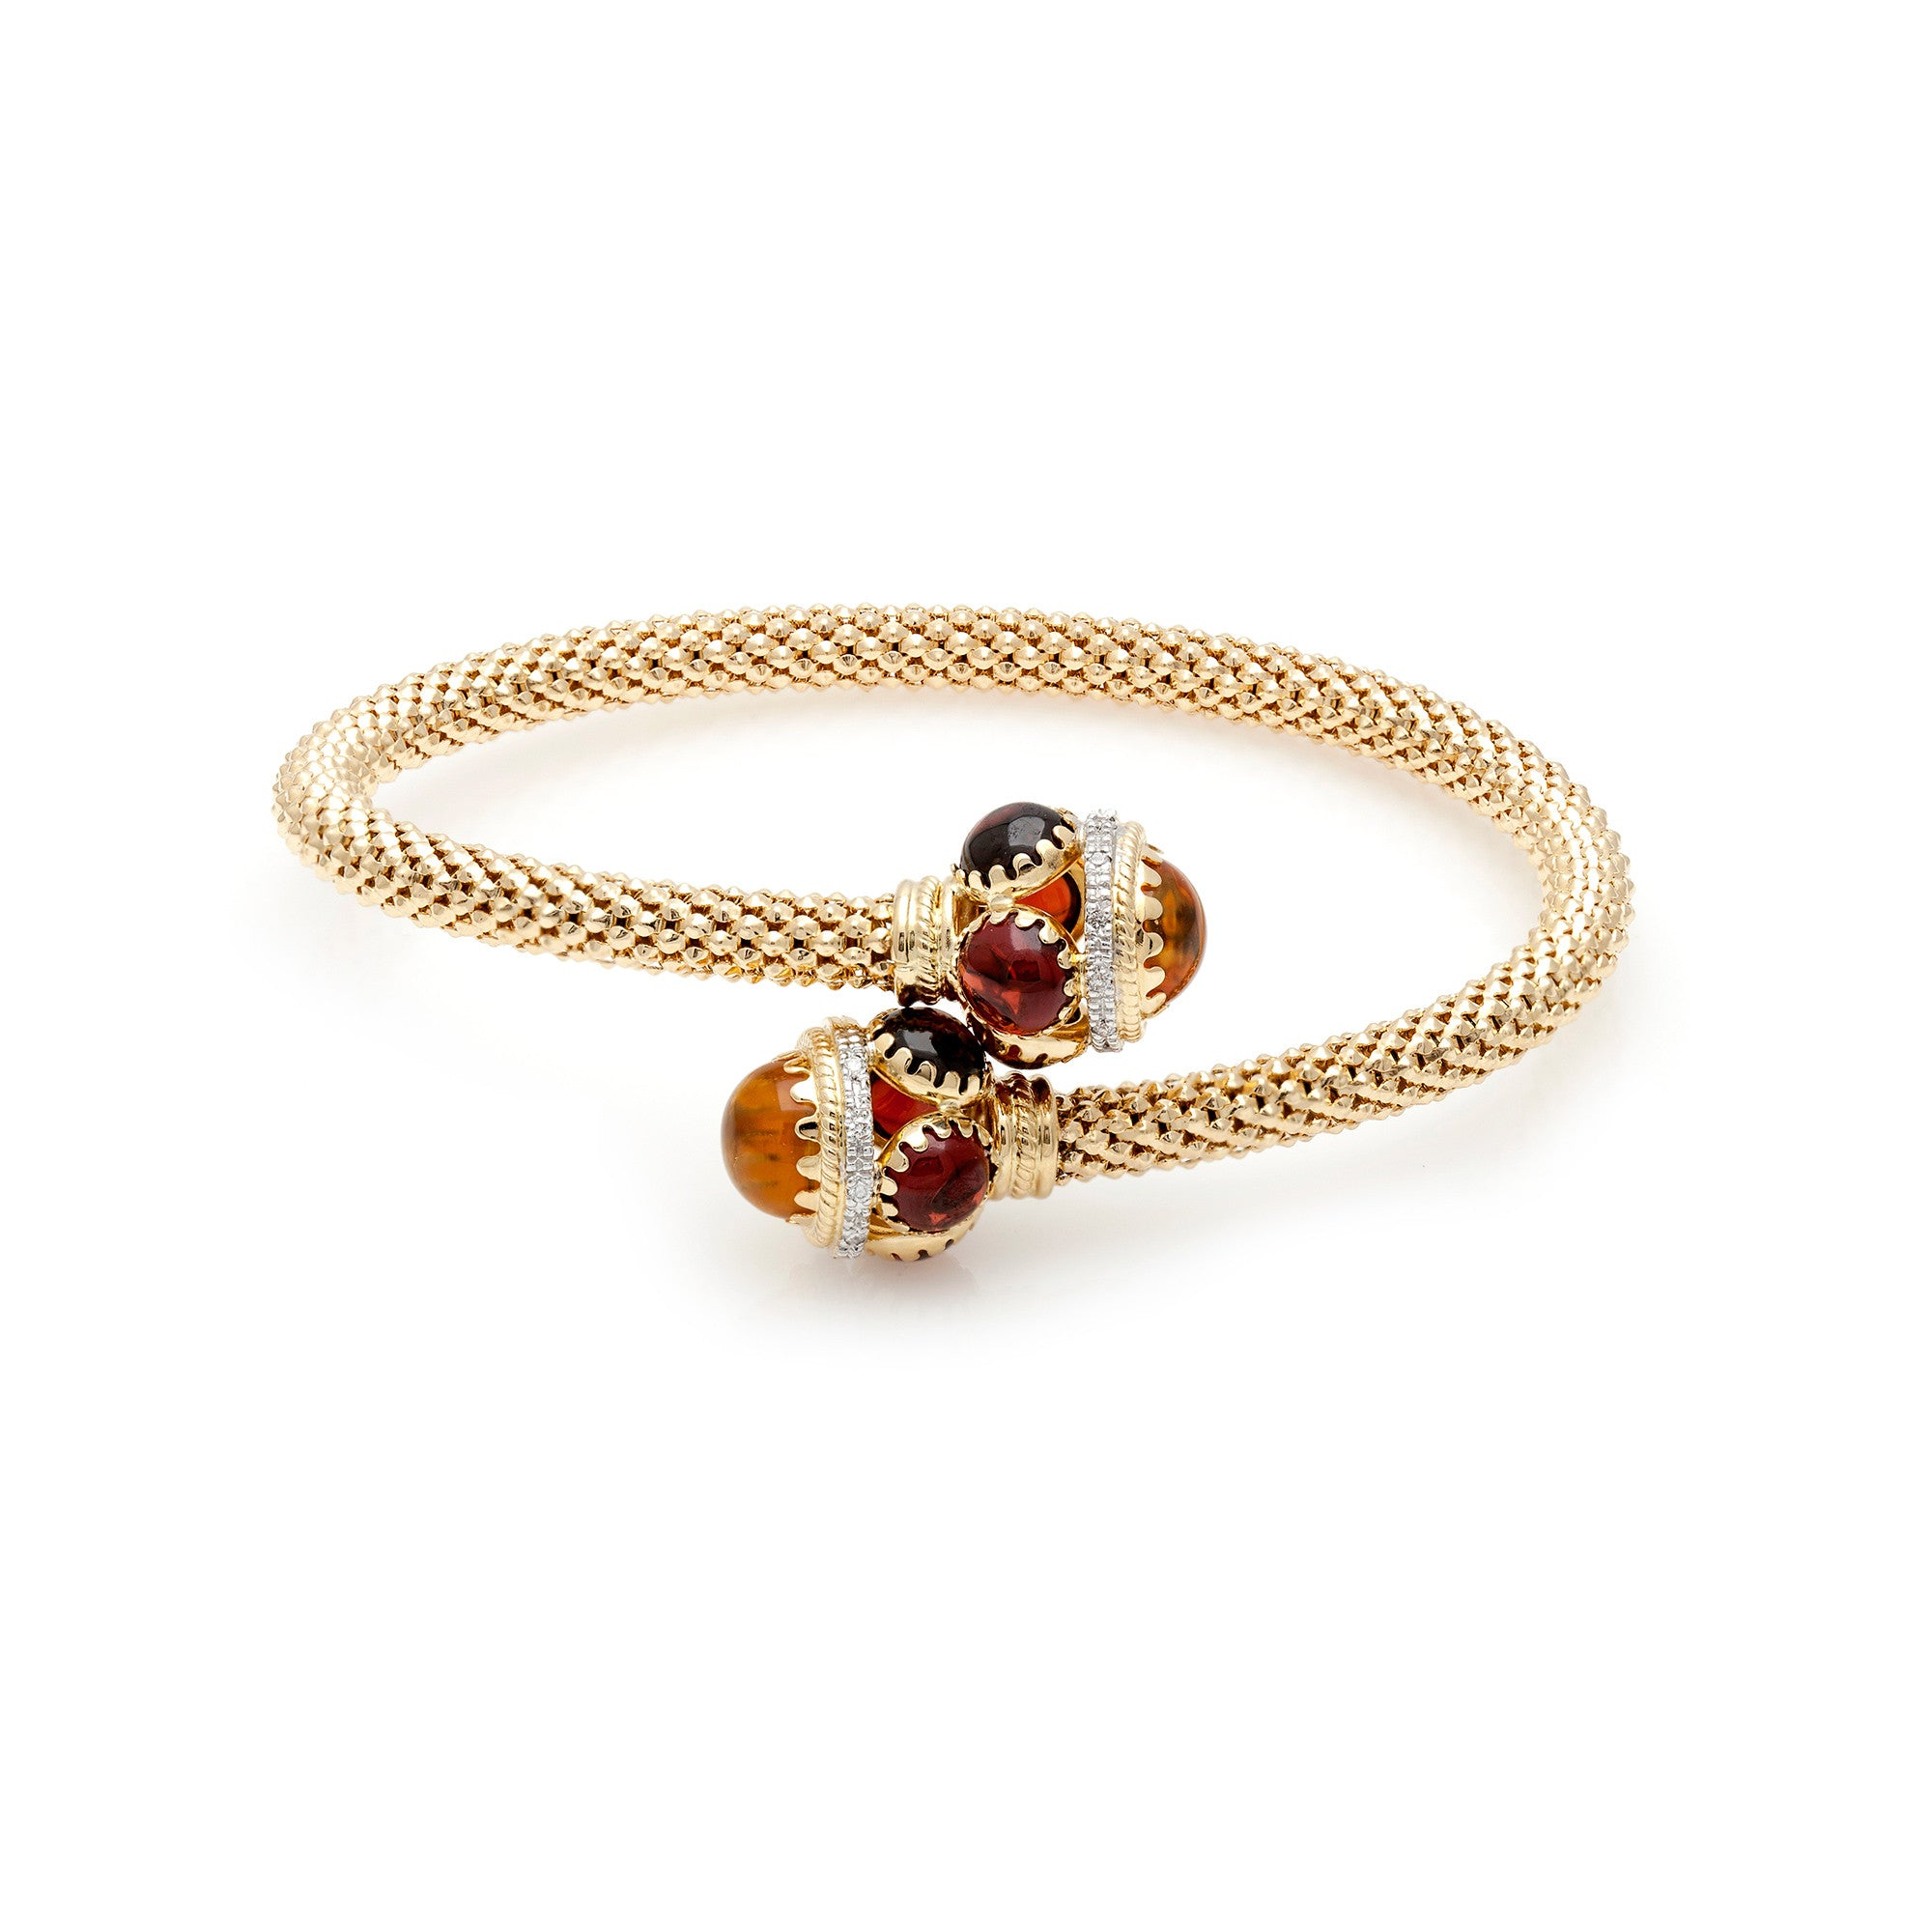 Gold Mesh & Coloured Stone Wrapped Bangle-40% OFF!